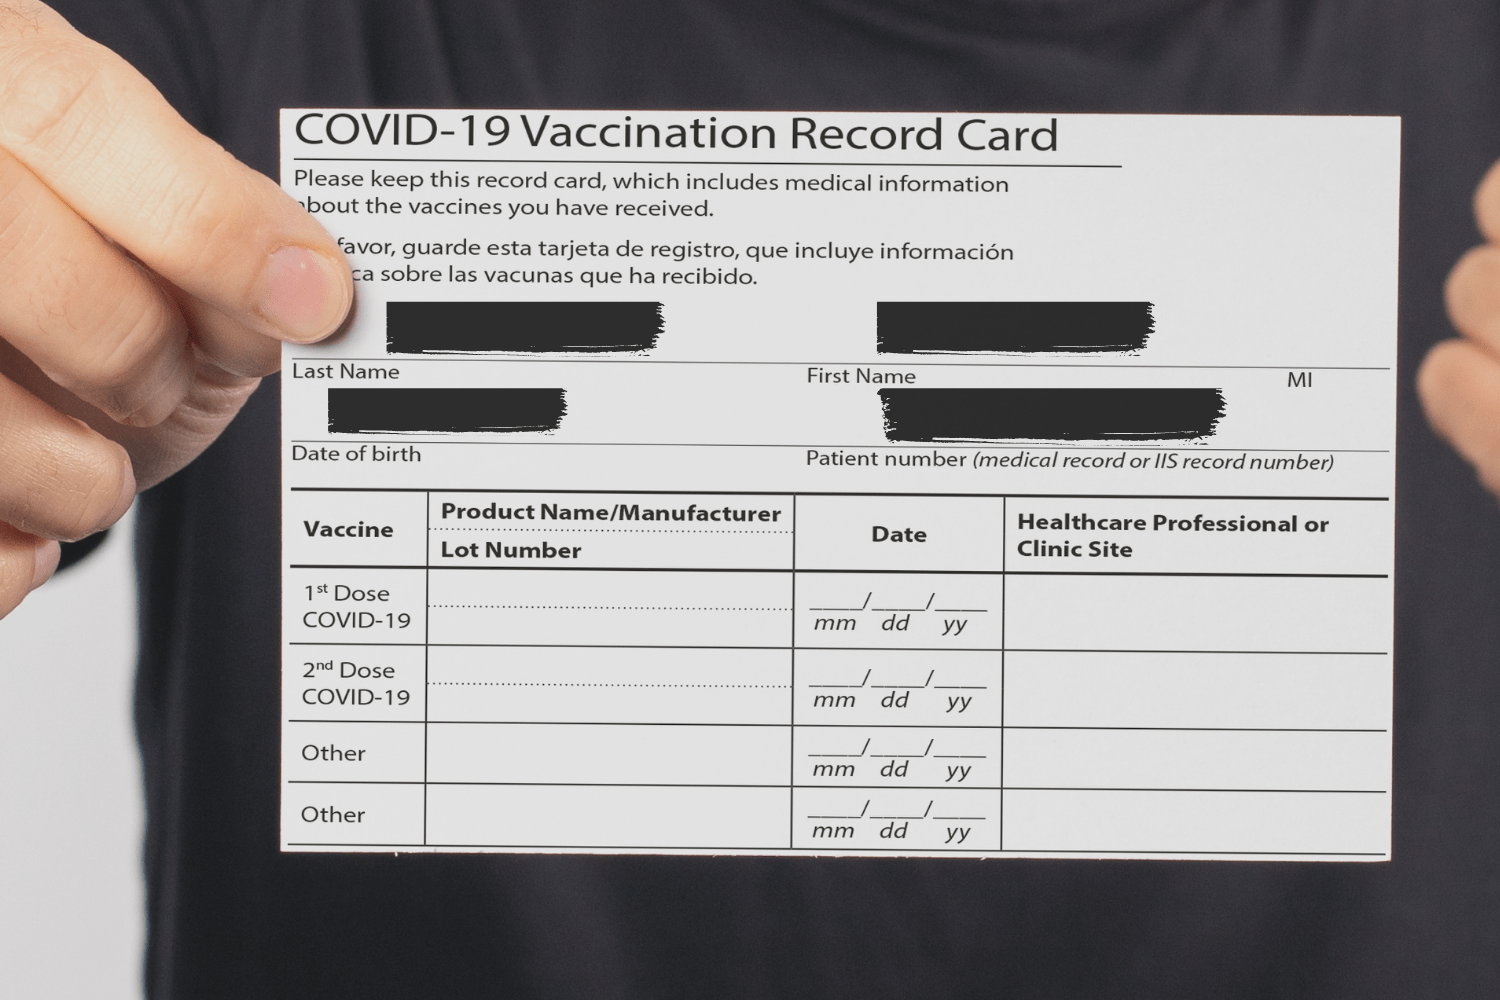 COVID-19 vaccination card with personal information blocked out.